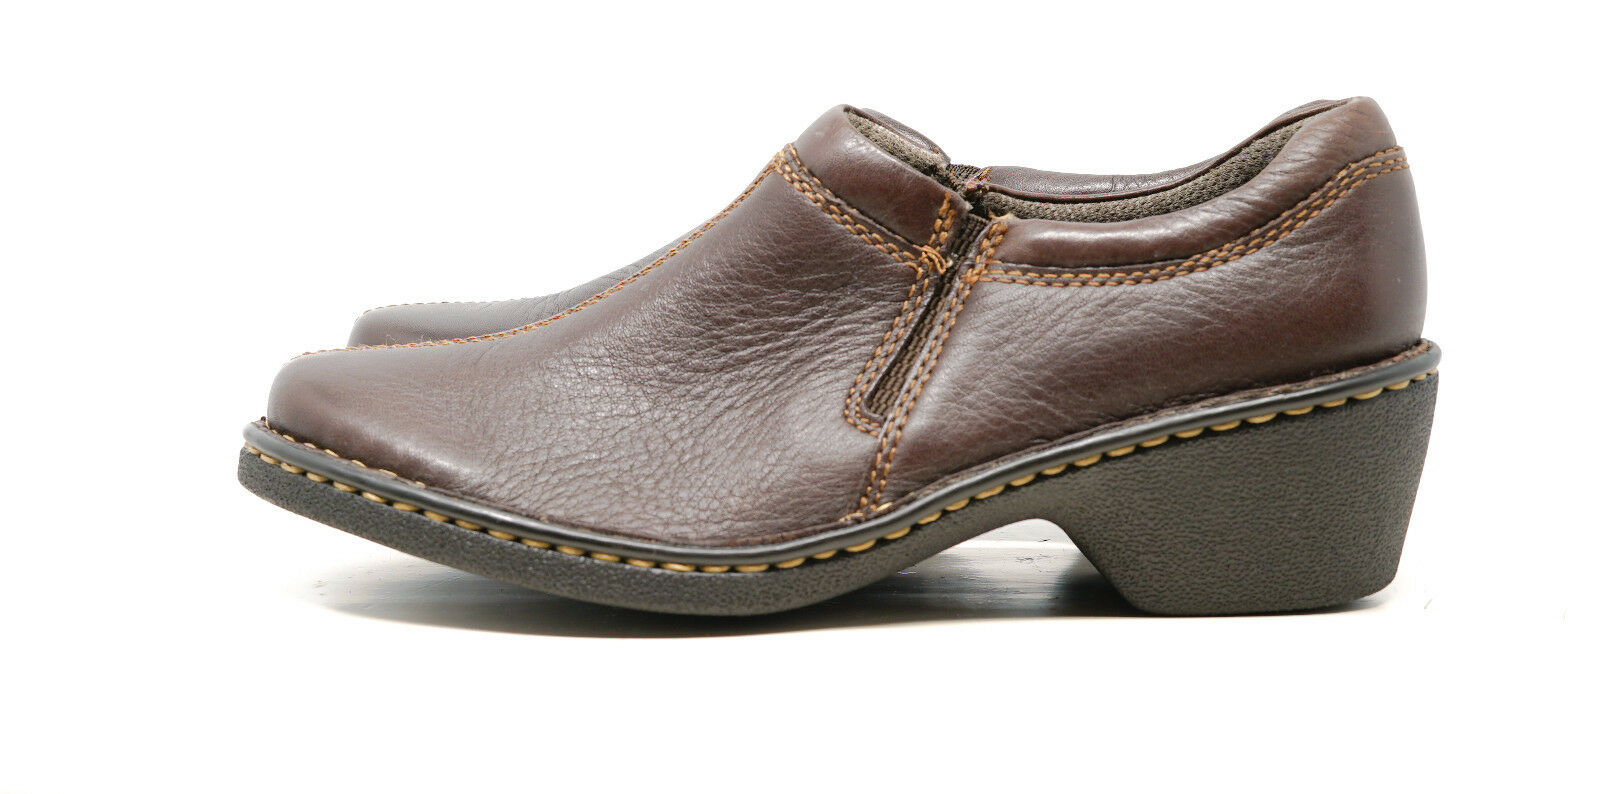 Eastland Women's shoes Brown Size US 8 New